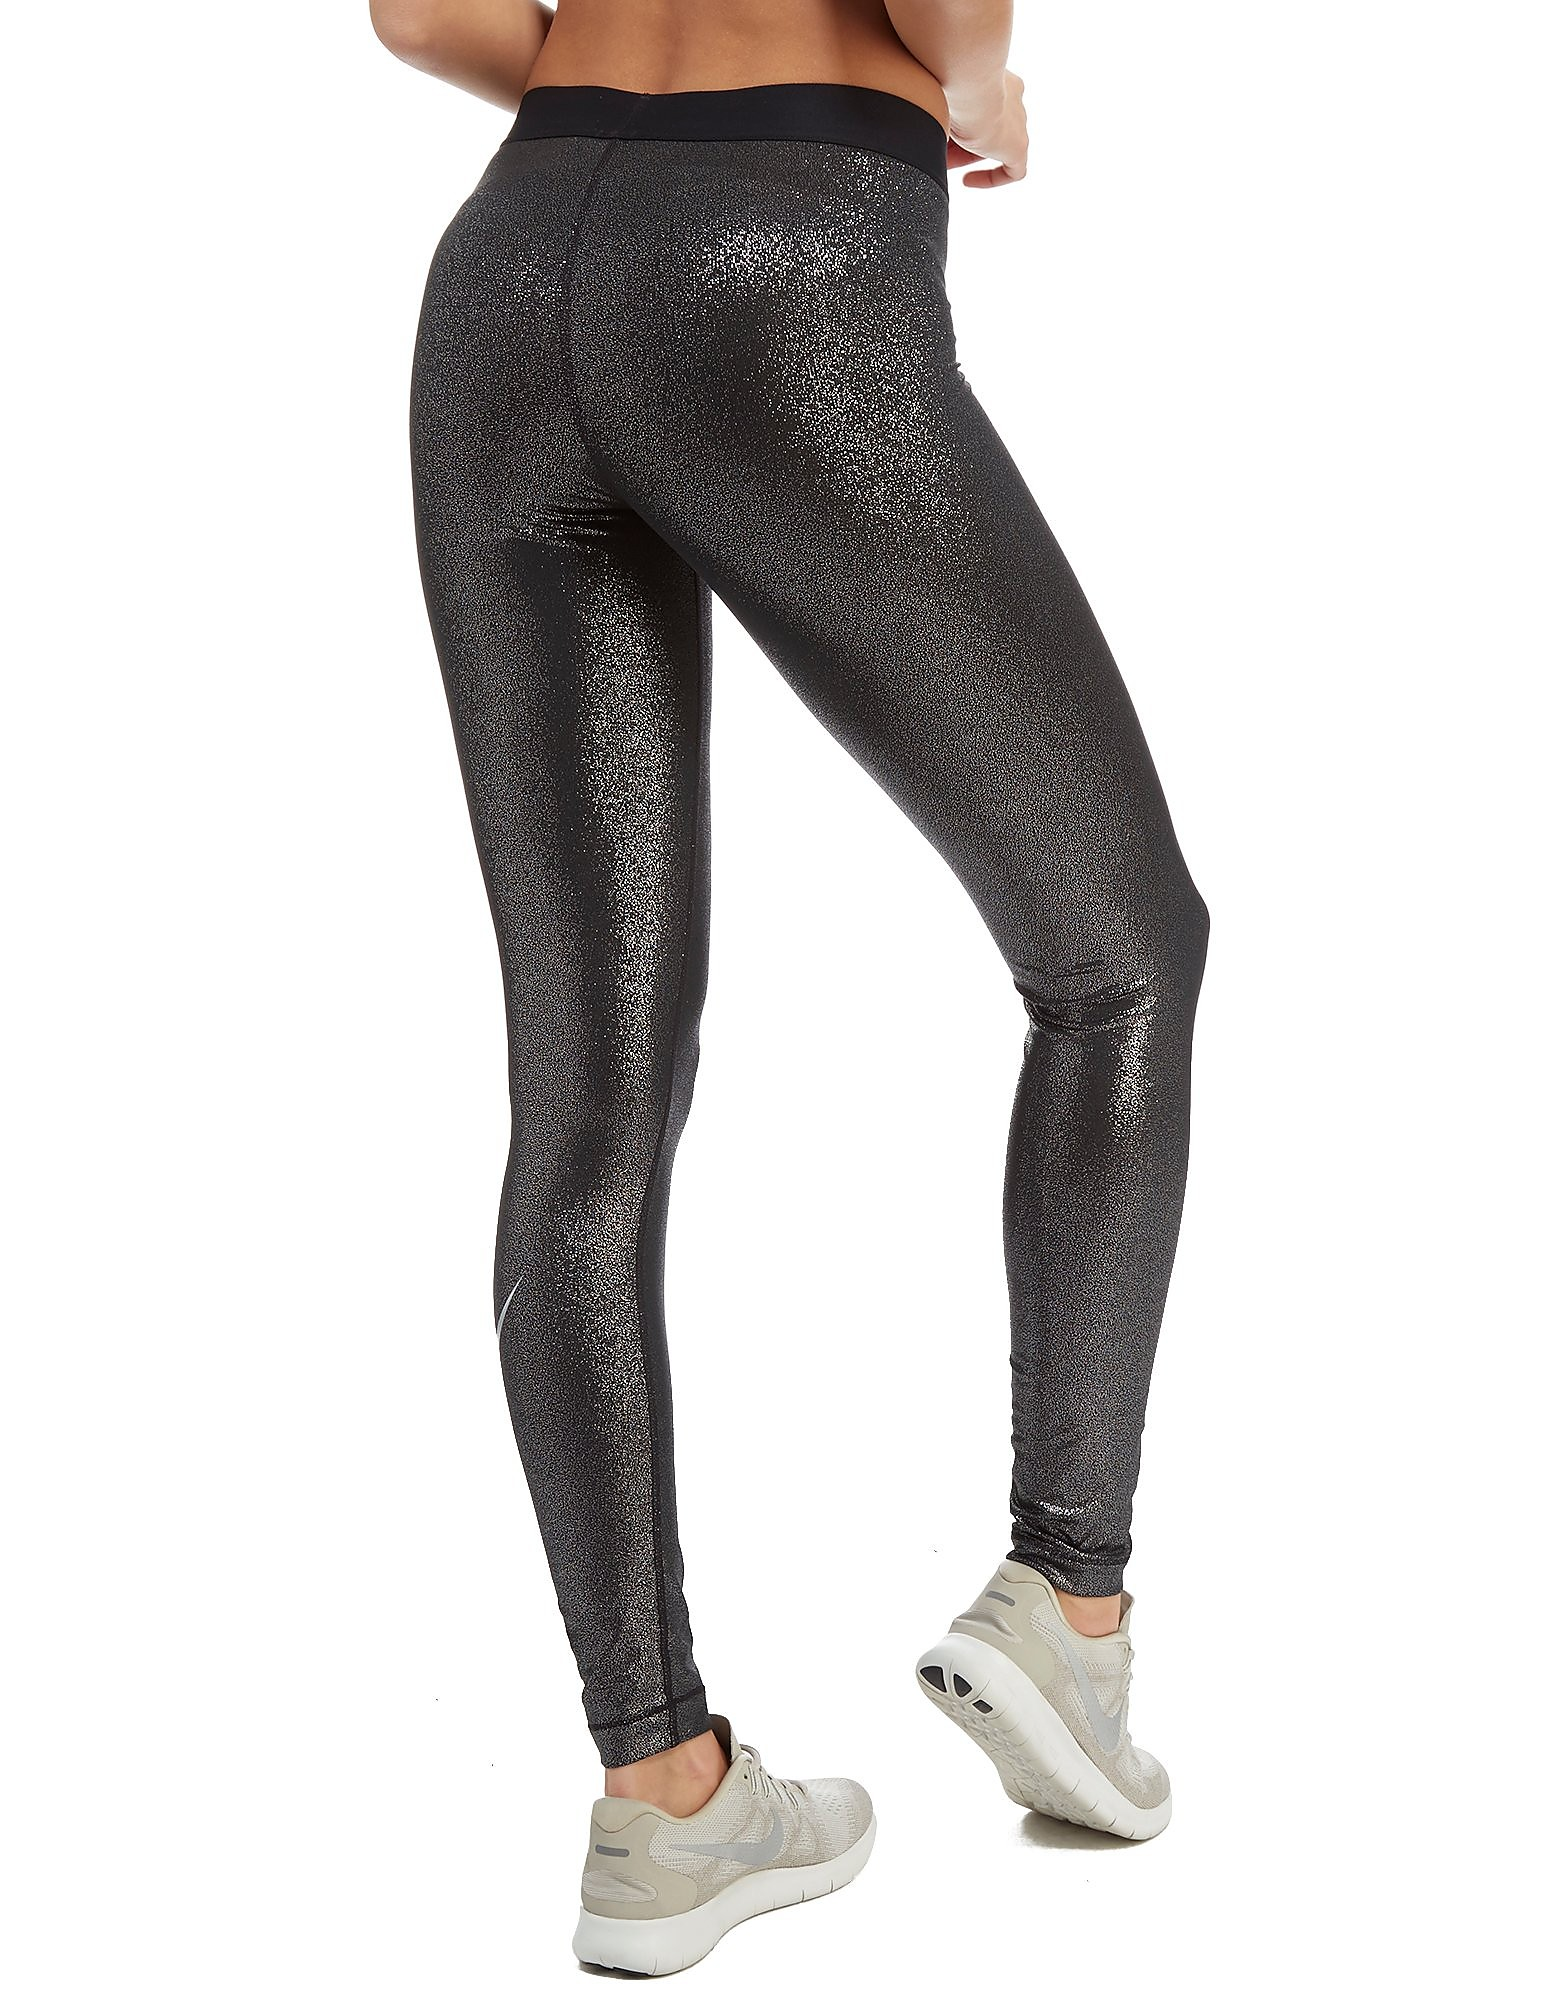 Nike Sparkle Tights